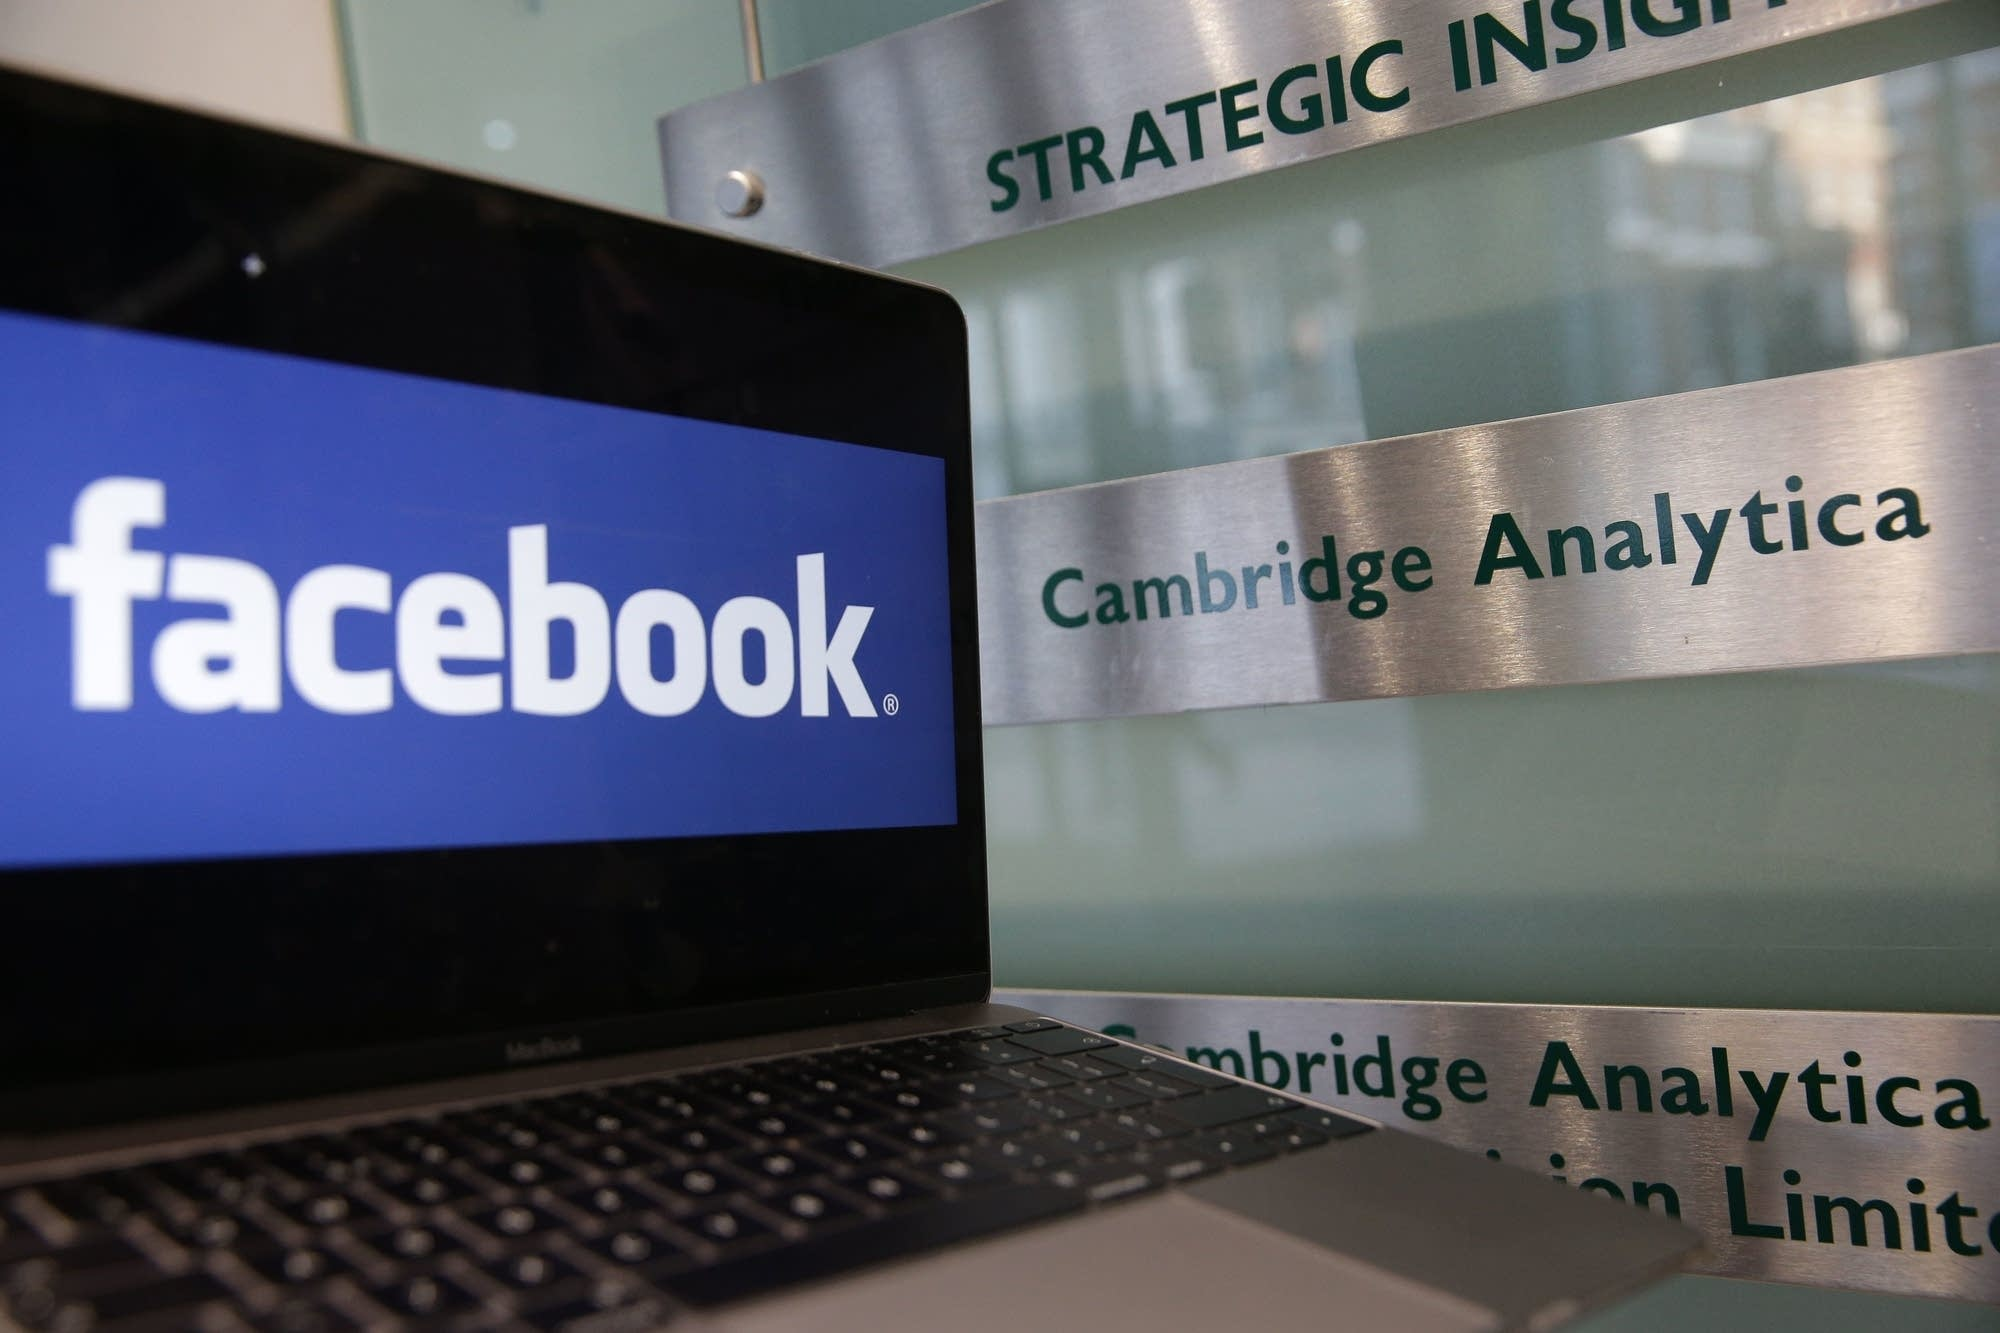 A laptop showing the Facebook logo alongside a Cambridge Analytica sign.